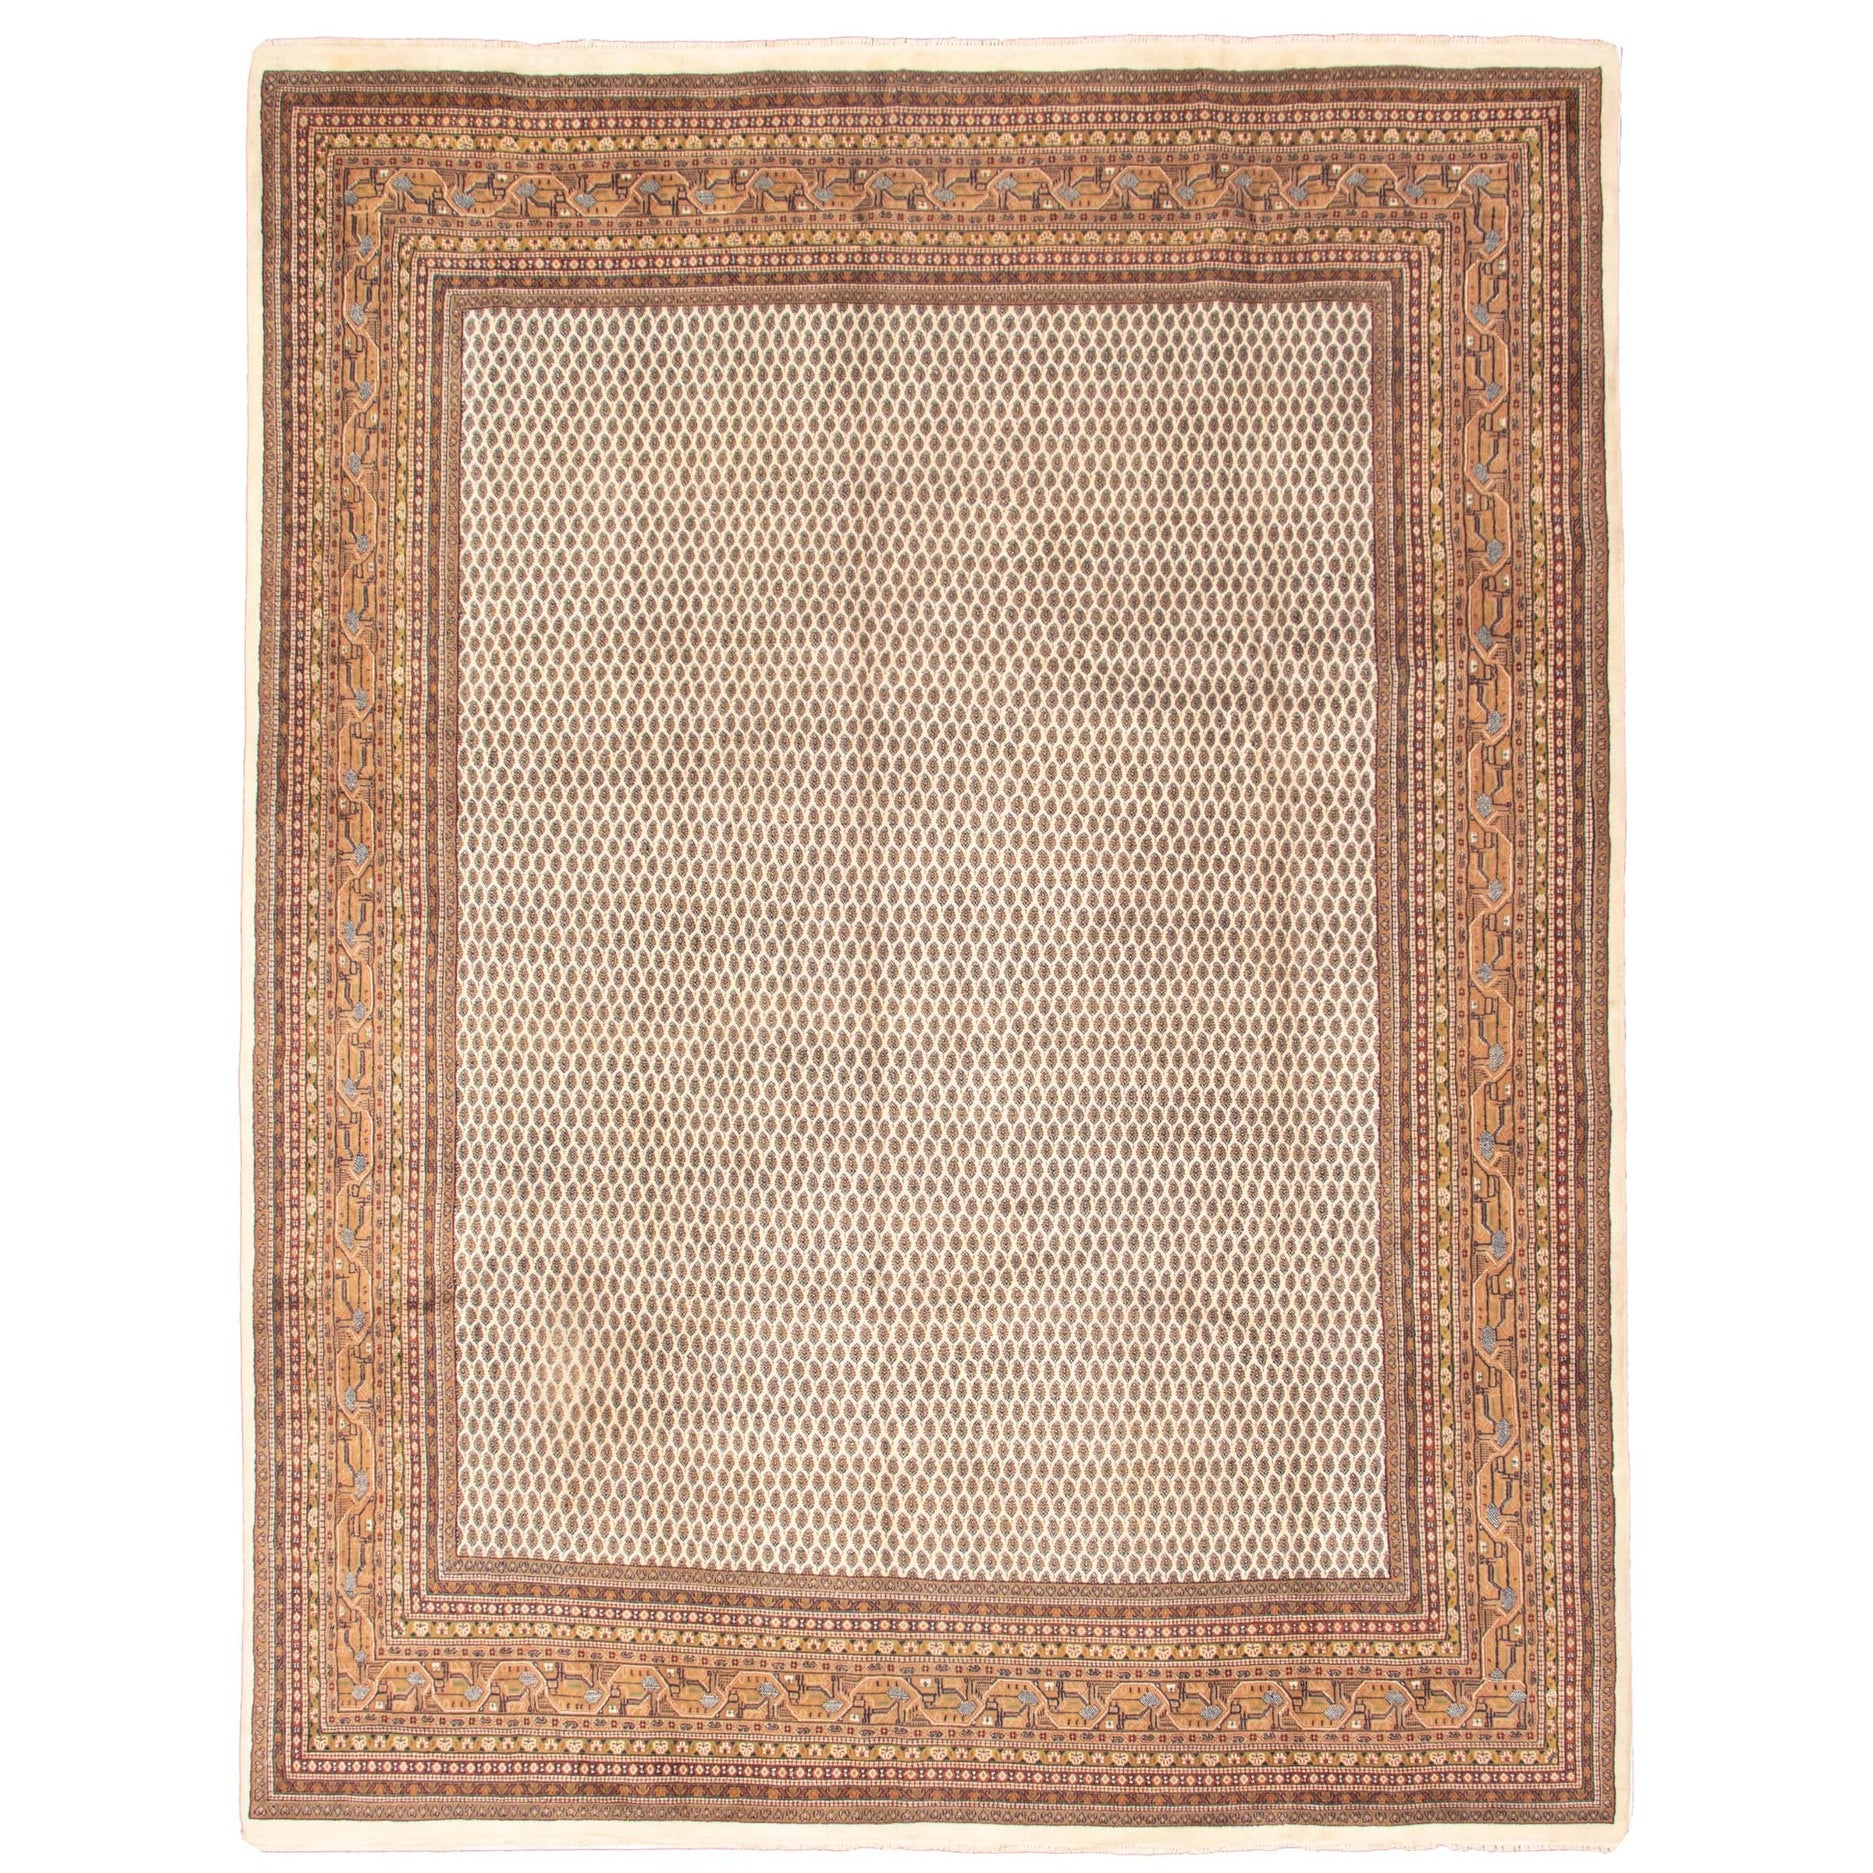 Ecarpetgallery Hand Knotted Royal Sarough Cream Wool Rug 9 10 X 12 8 Overstock 32503533